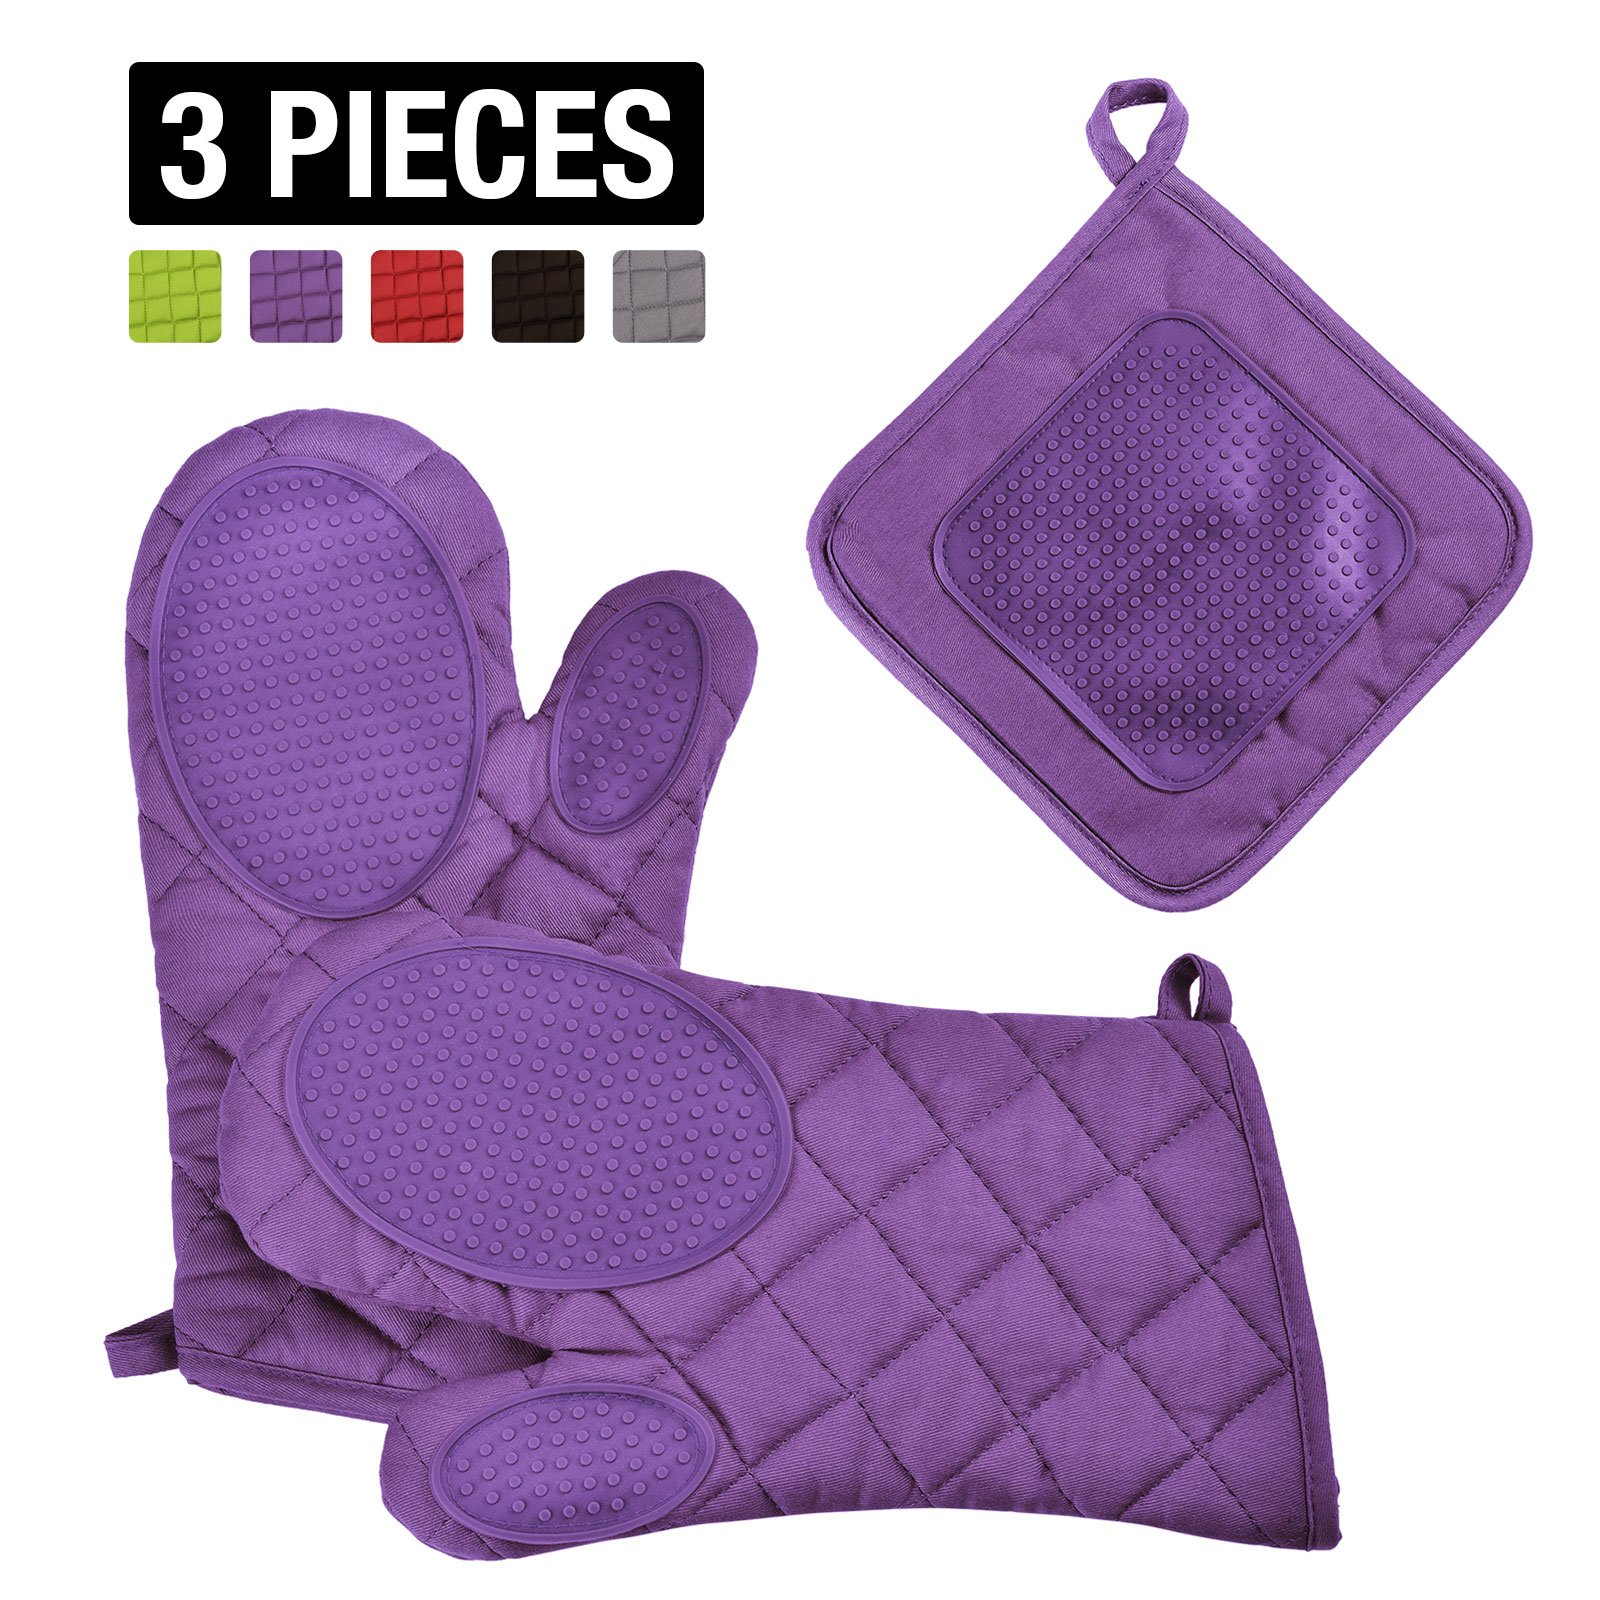 VEEYOO Cotton Oven Mitts Pot Holders Set - Kitchen Silicone Oven Mitt Heat Resistant, Non-slip Grip Oven Gloves Potholder 3 Packs Cooking, Baking & BBQ, Purple by VEEYOO (Image #1)